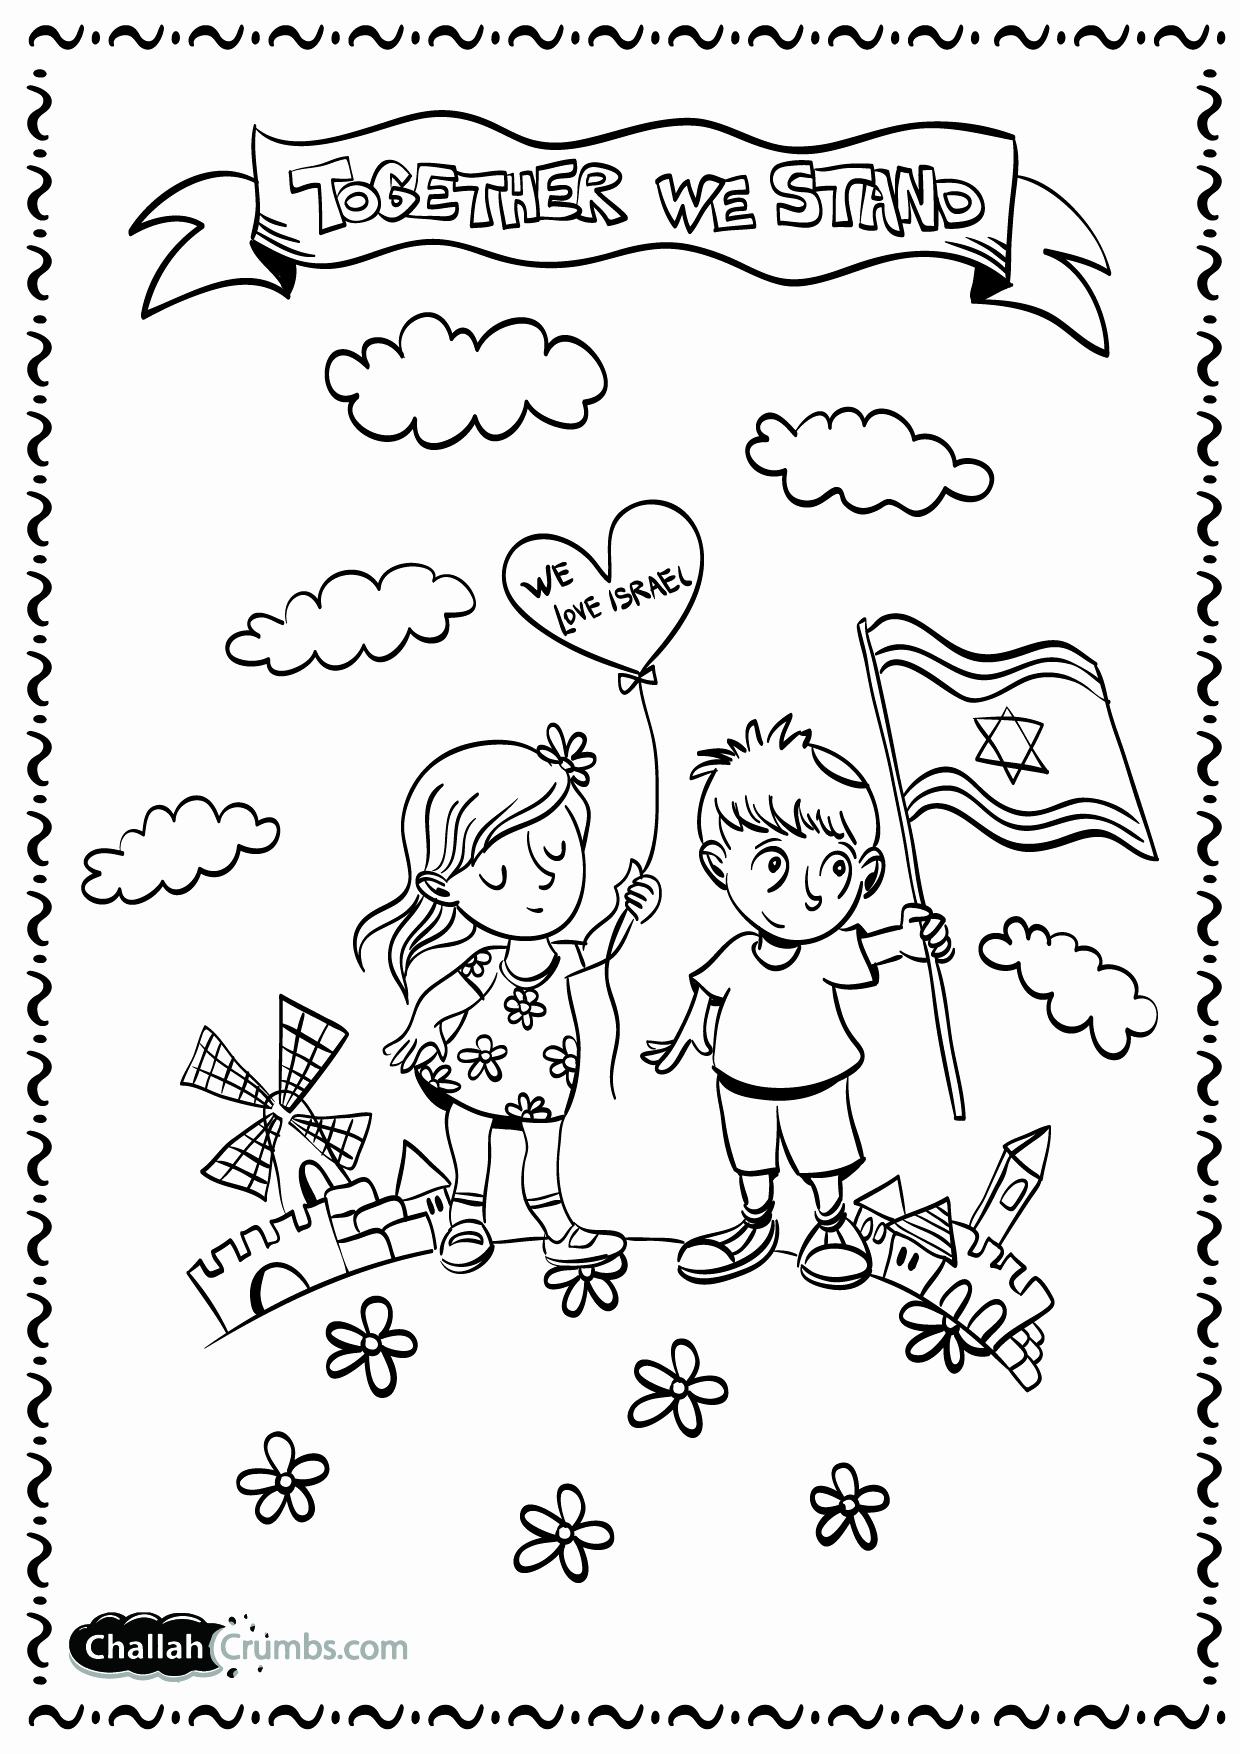 Lulav And Etrog Coloring Pages At Getcolorings